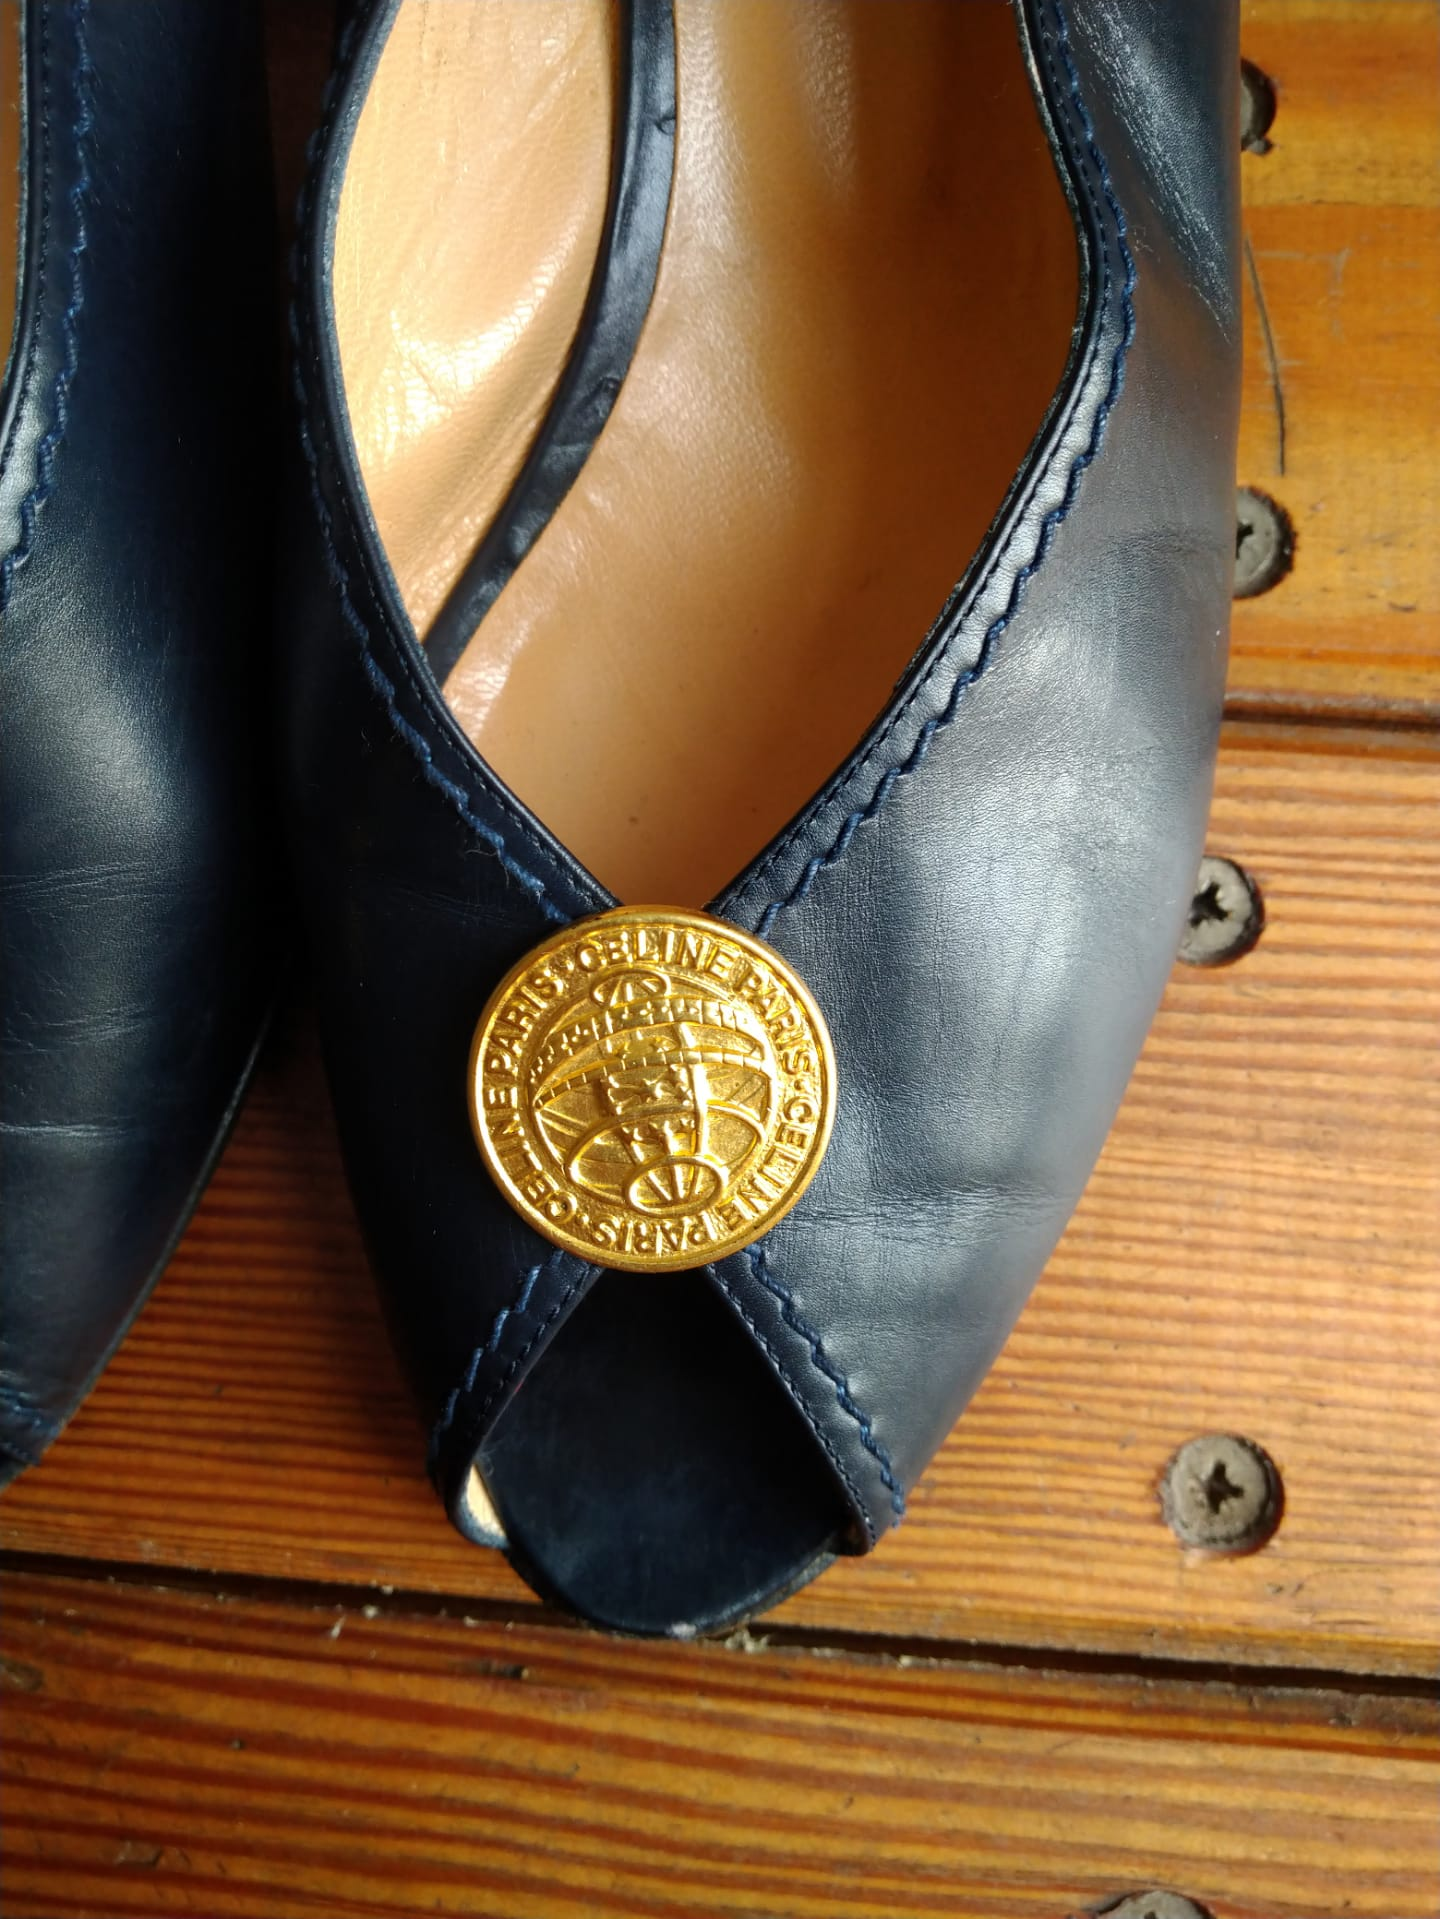 Celine sandals with a medal